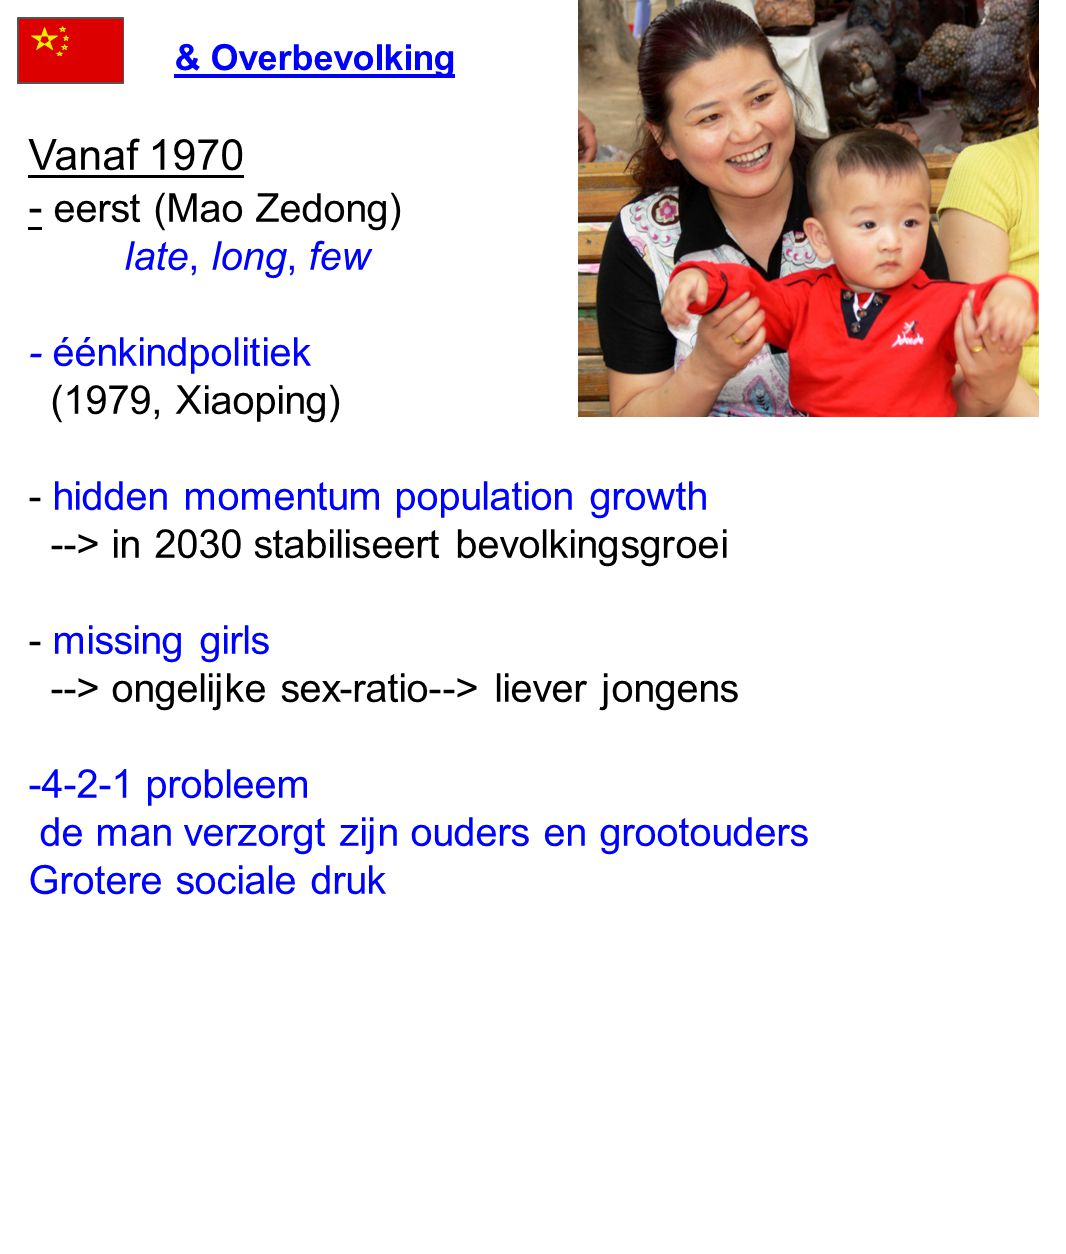 Vanaf 1970 - eerst (Mao Zedong) late, long, few - éénkindpolitiek (1979, Xiaoping) - hidden momentum population growth --> in 2030 stabiliseert bevolk